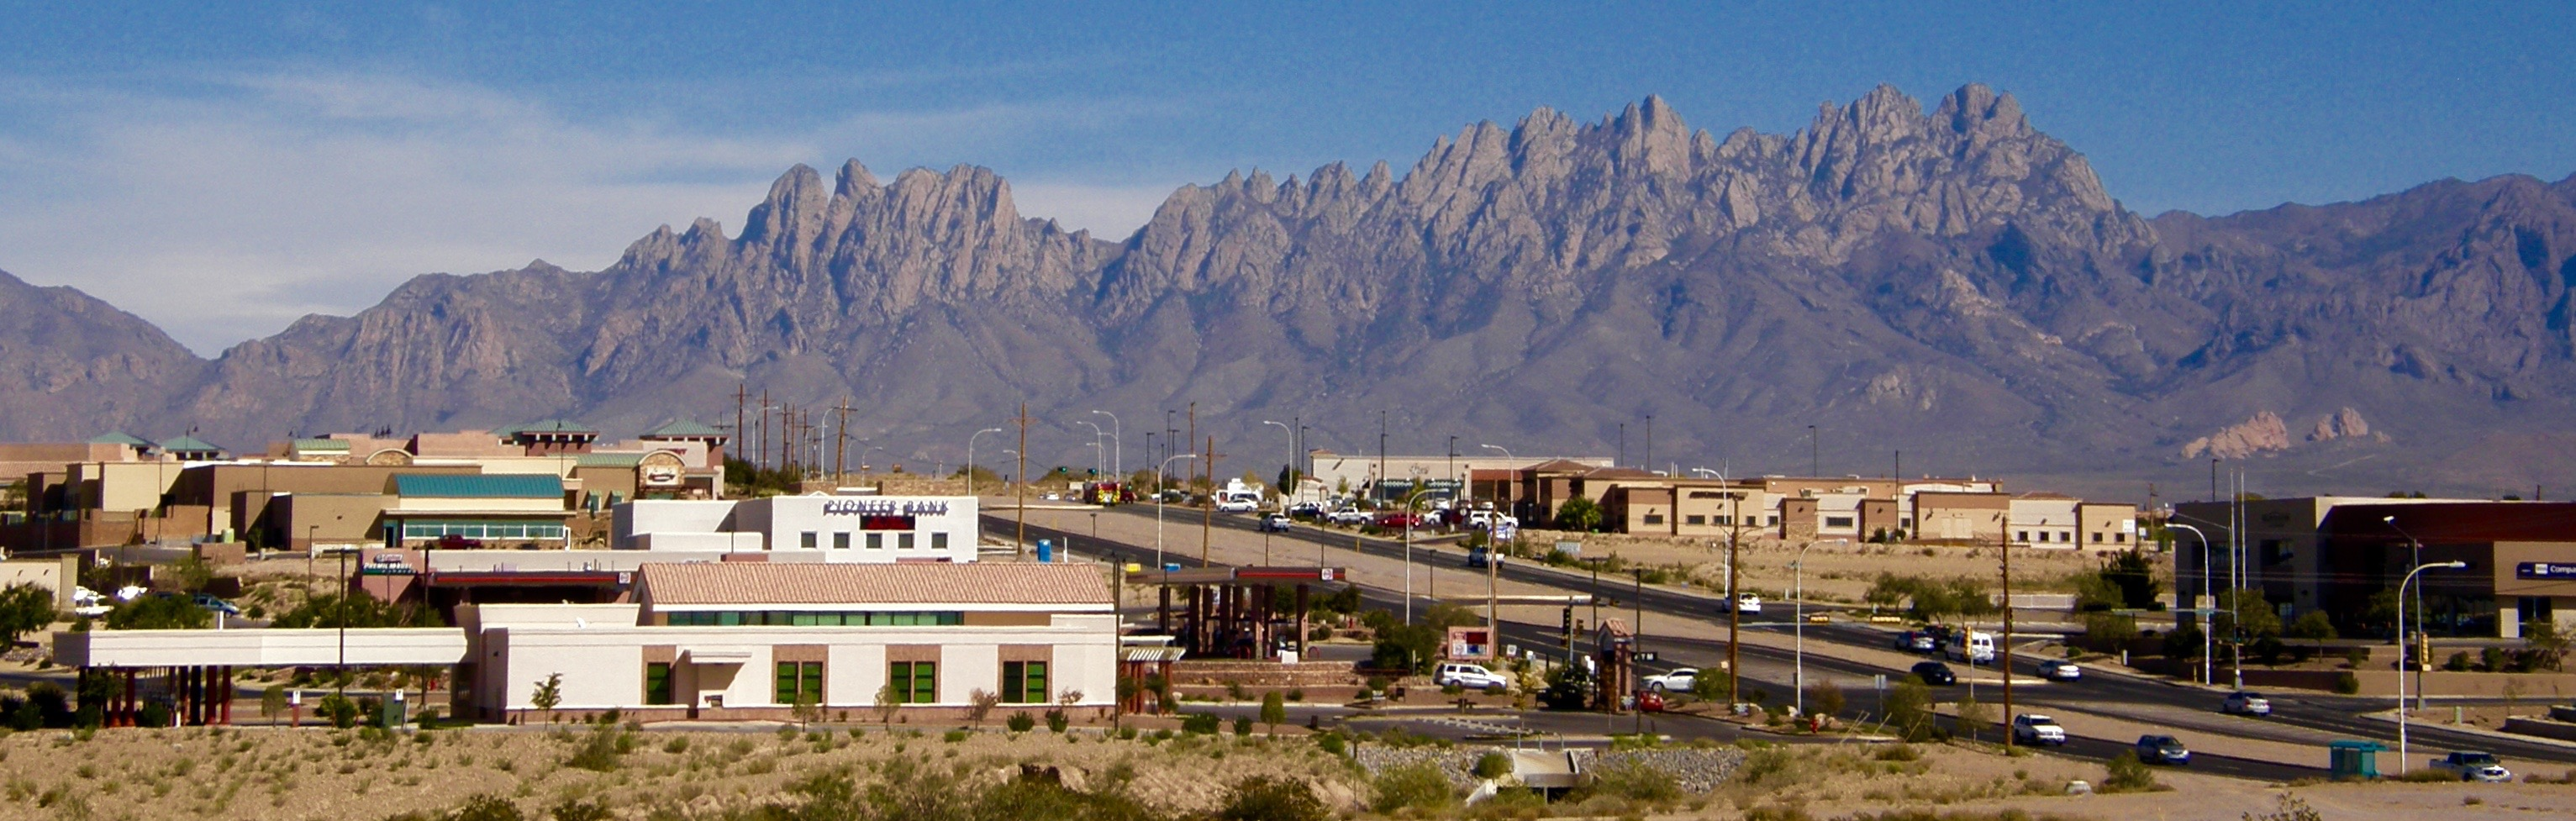 Organ Mountains, Las Cruces, NM 2012